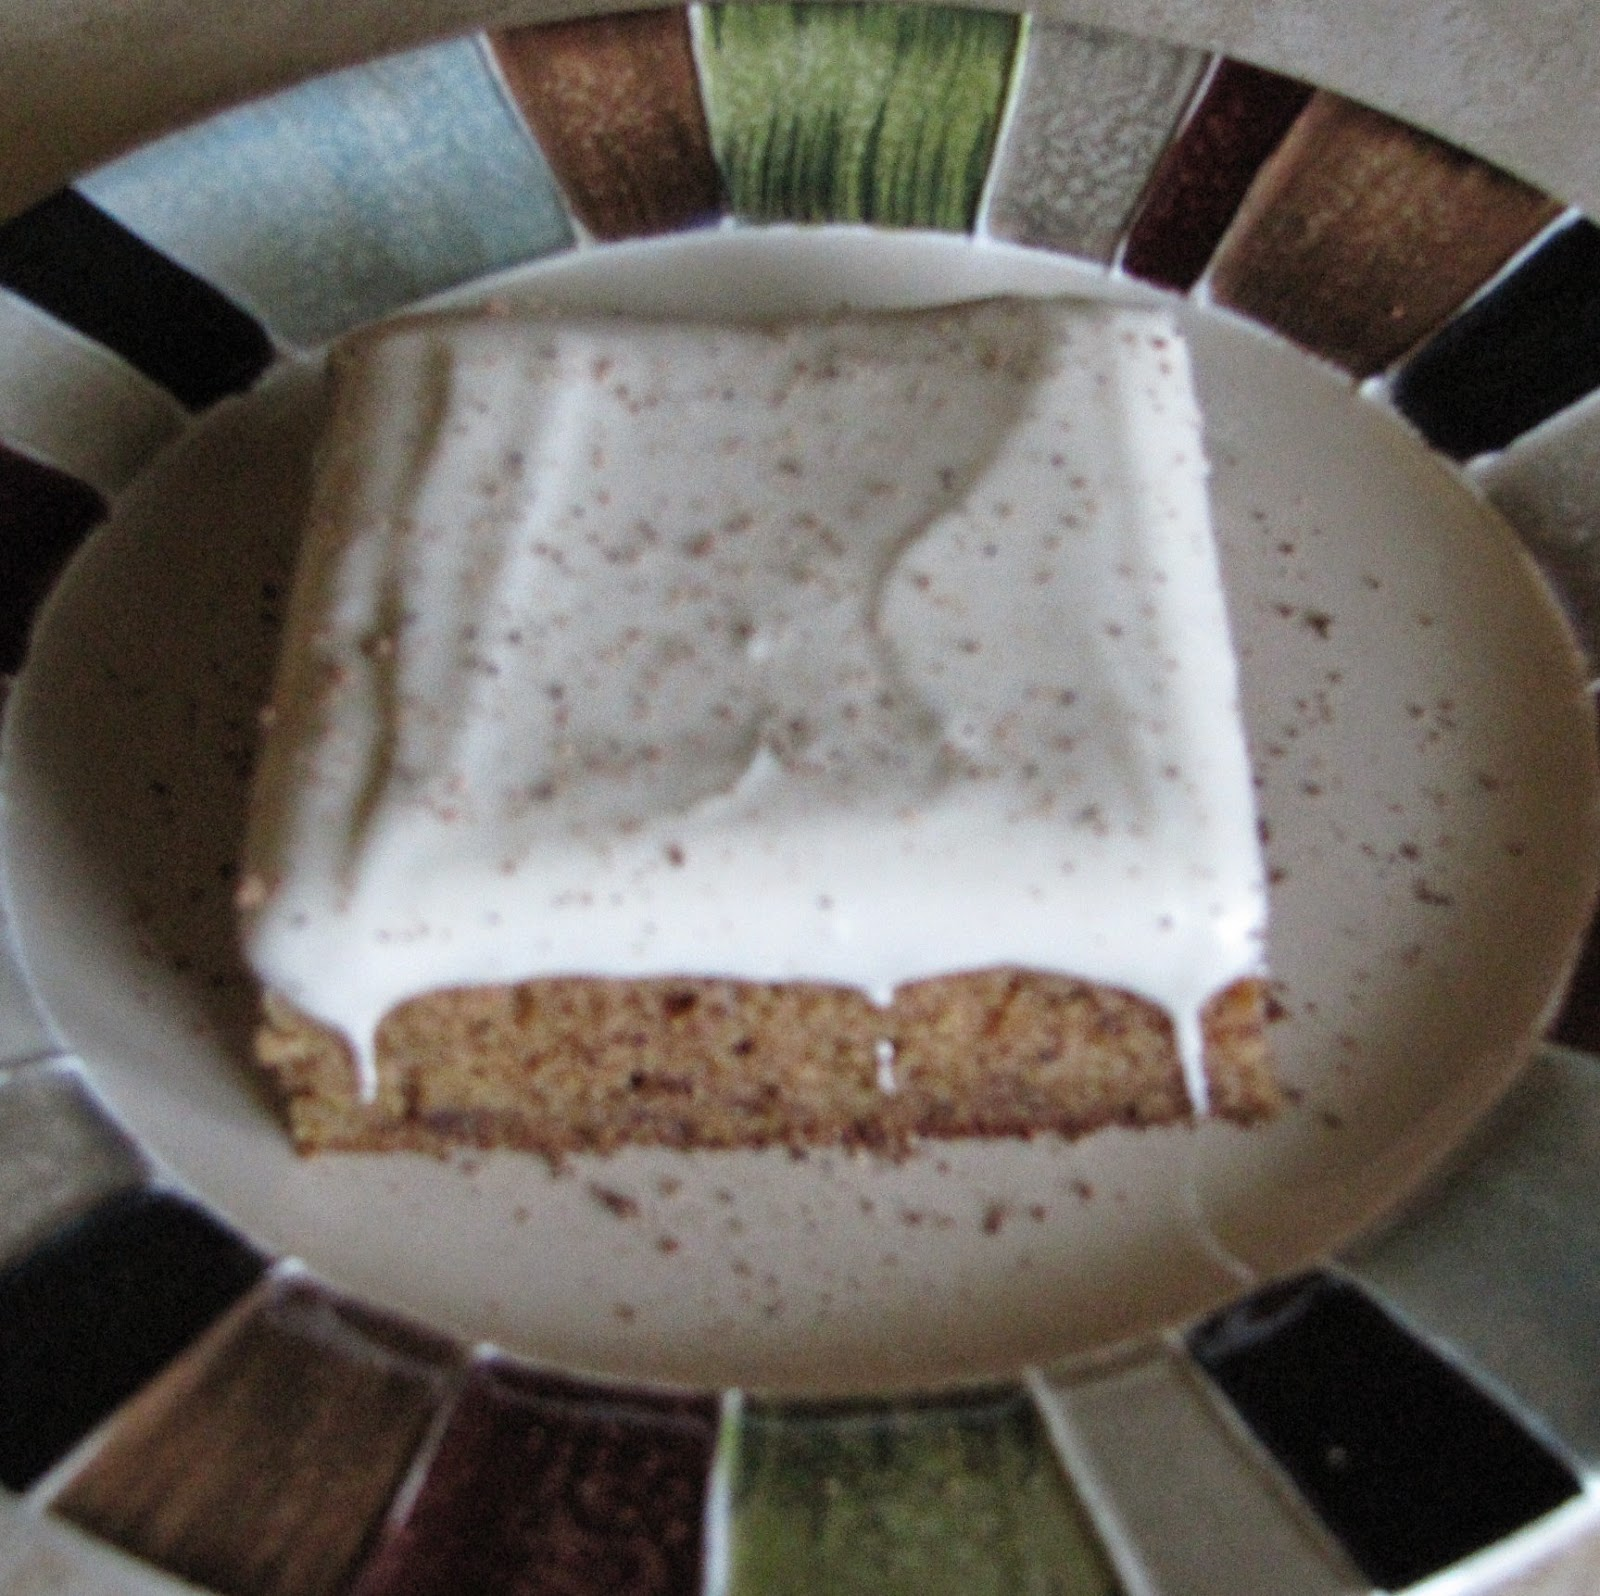 ... Home Kitchen: Pumpkin Banana Sheet Cake with Cream Cheese Frosting